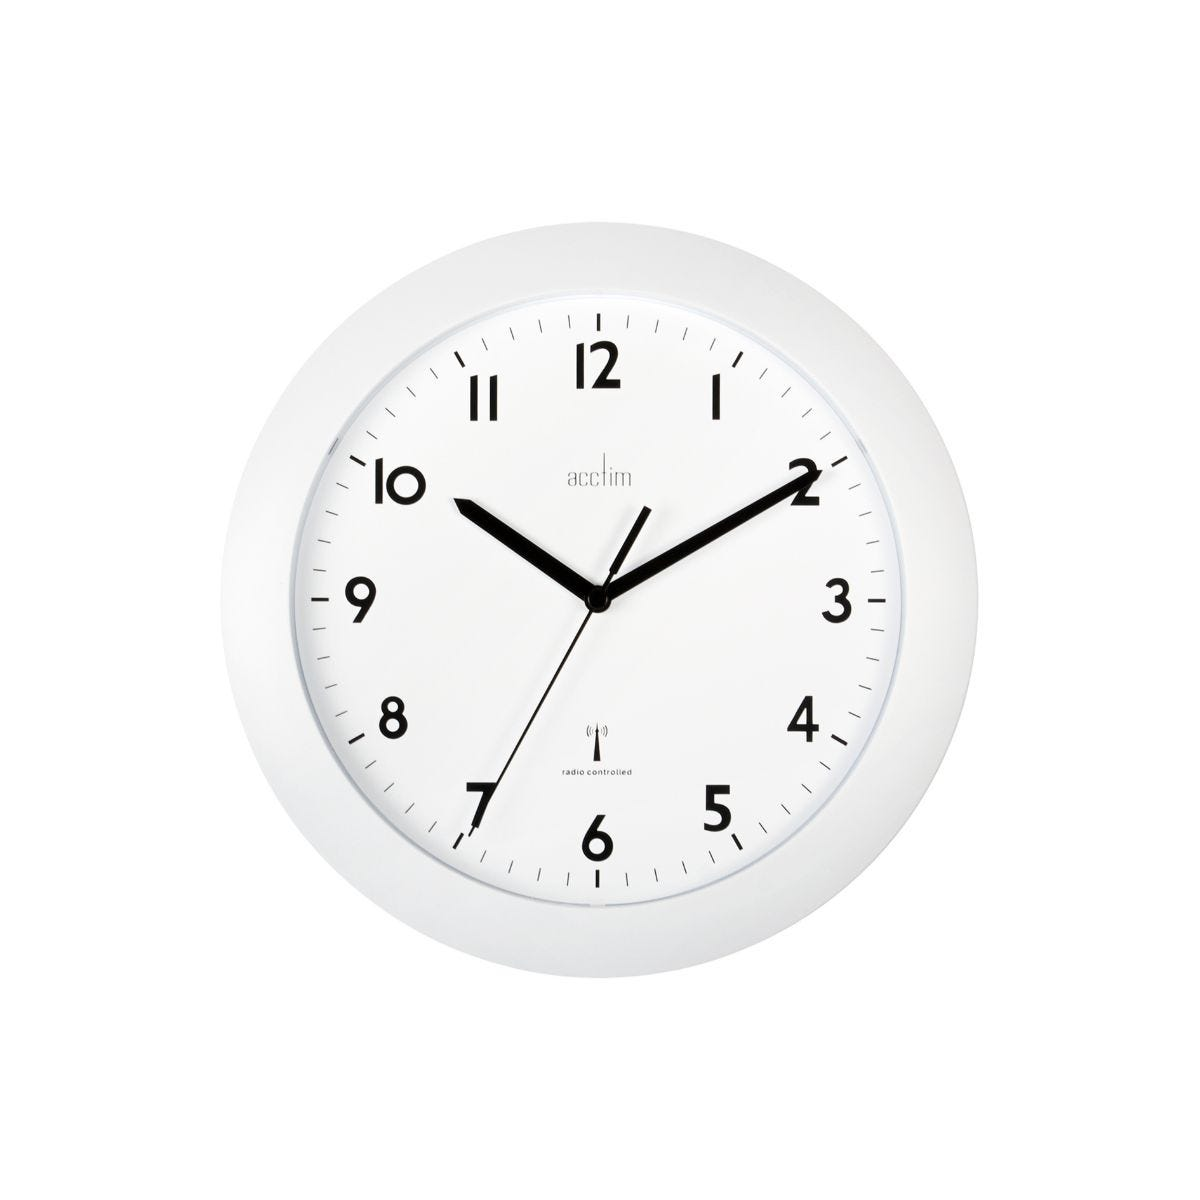 Image of Acctim Cadiz Radio Controlled Wall Clock, White